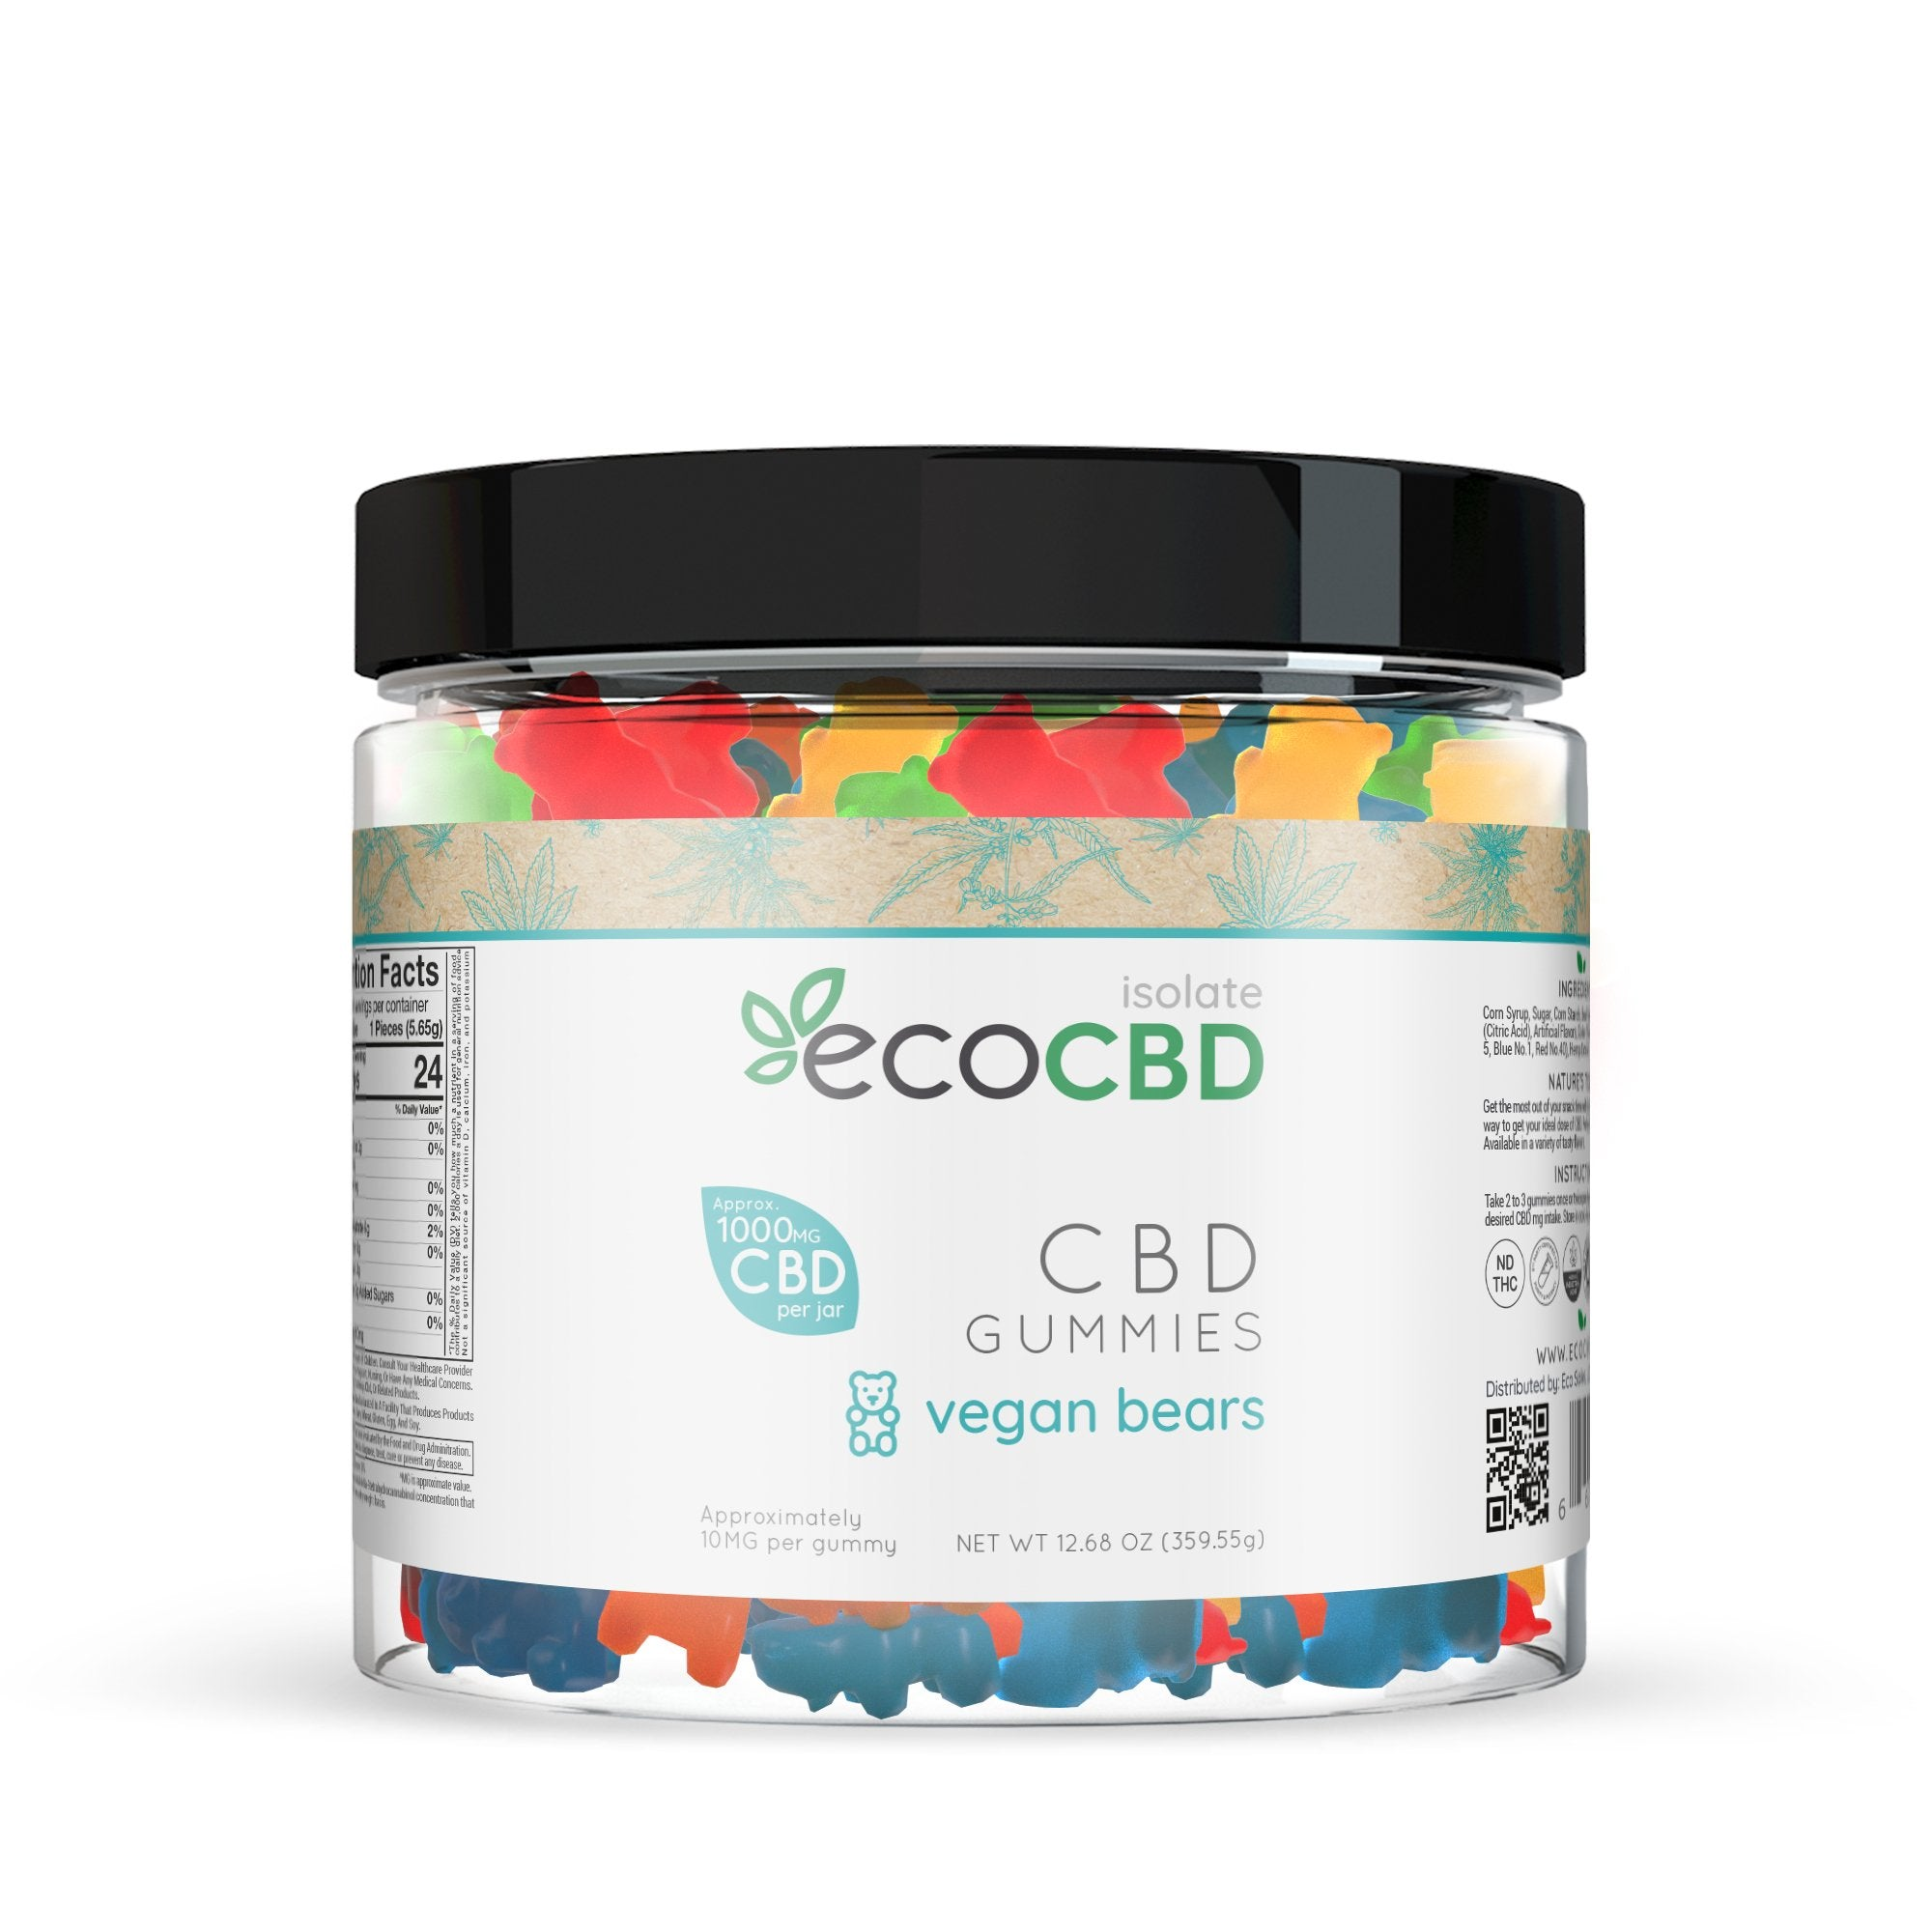 Eco CBD - CBD Isolate Vegan Gummy Bears - 1000mg